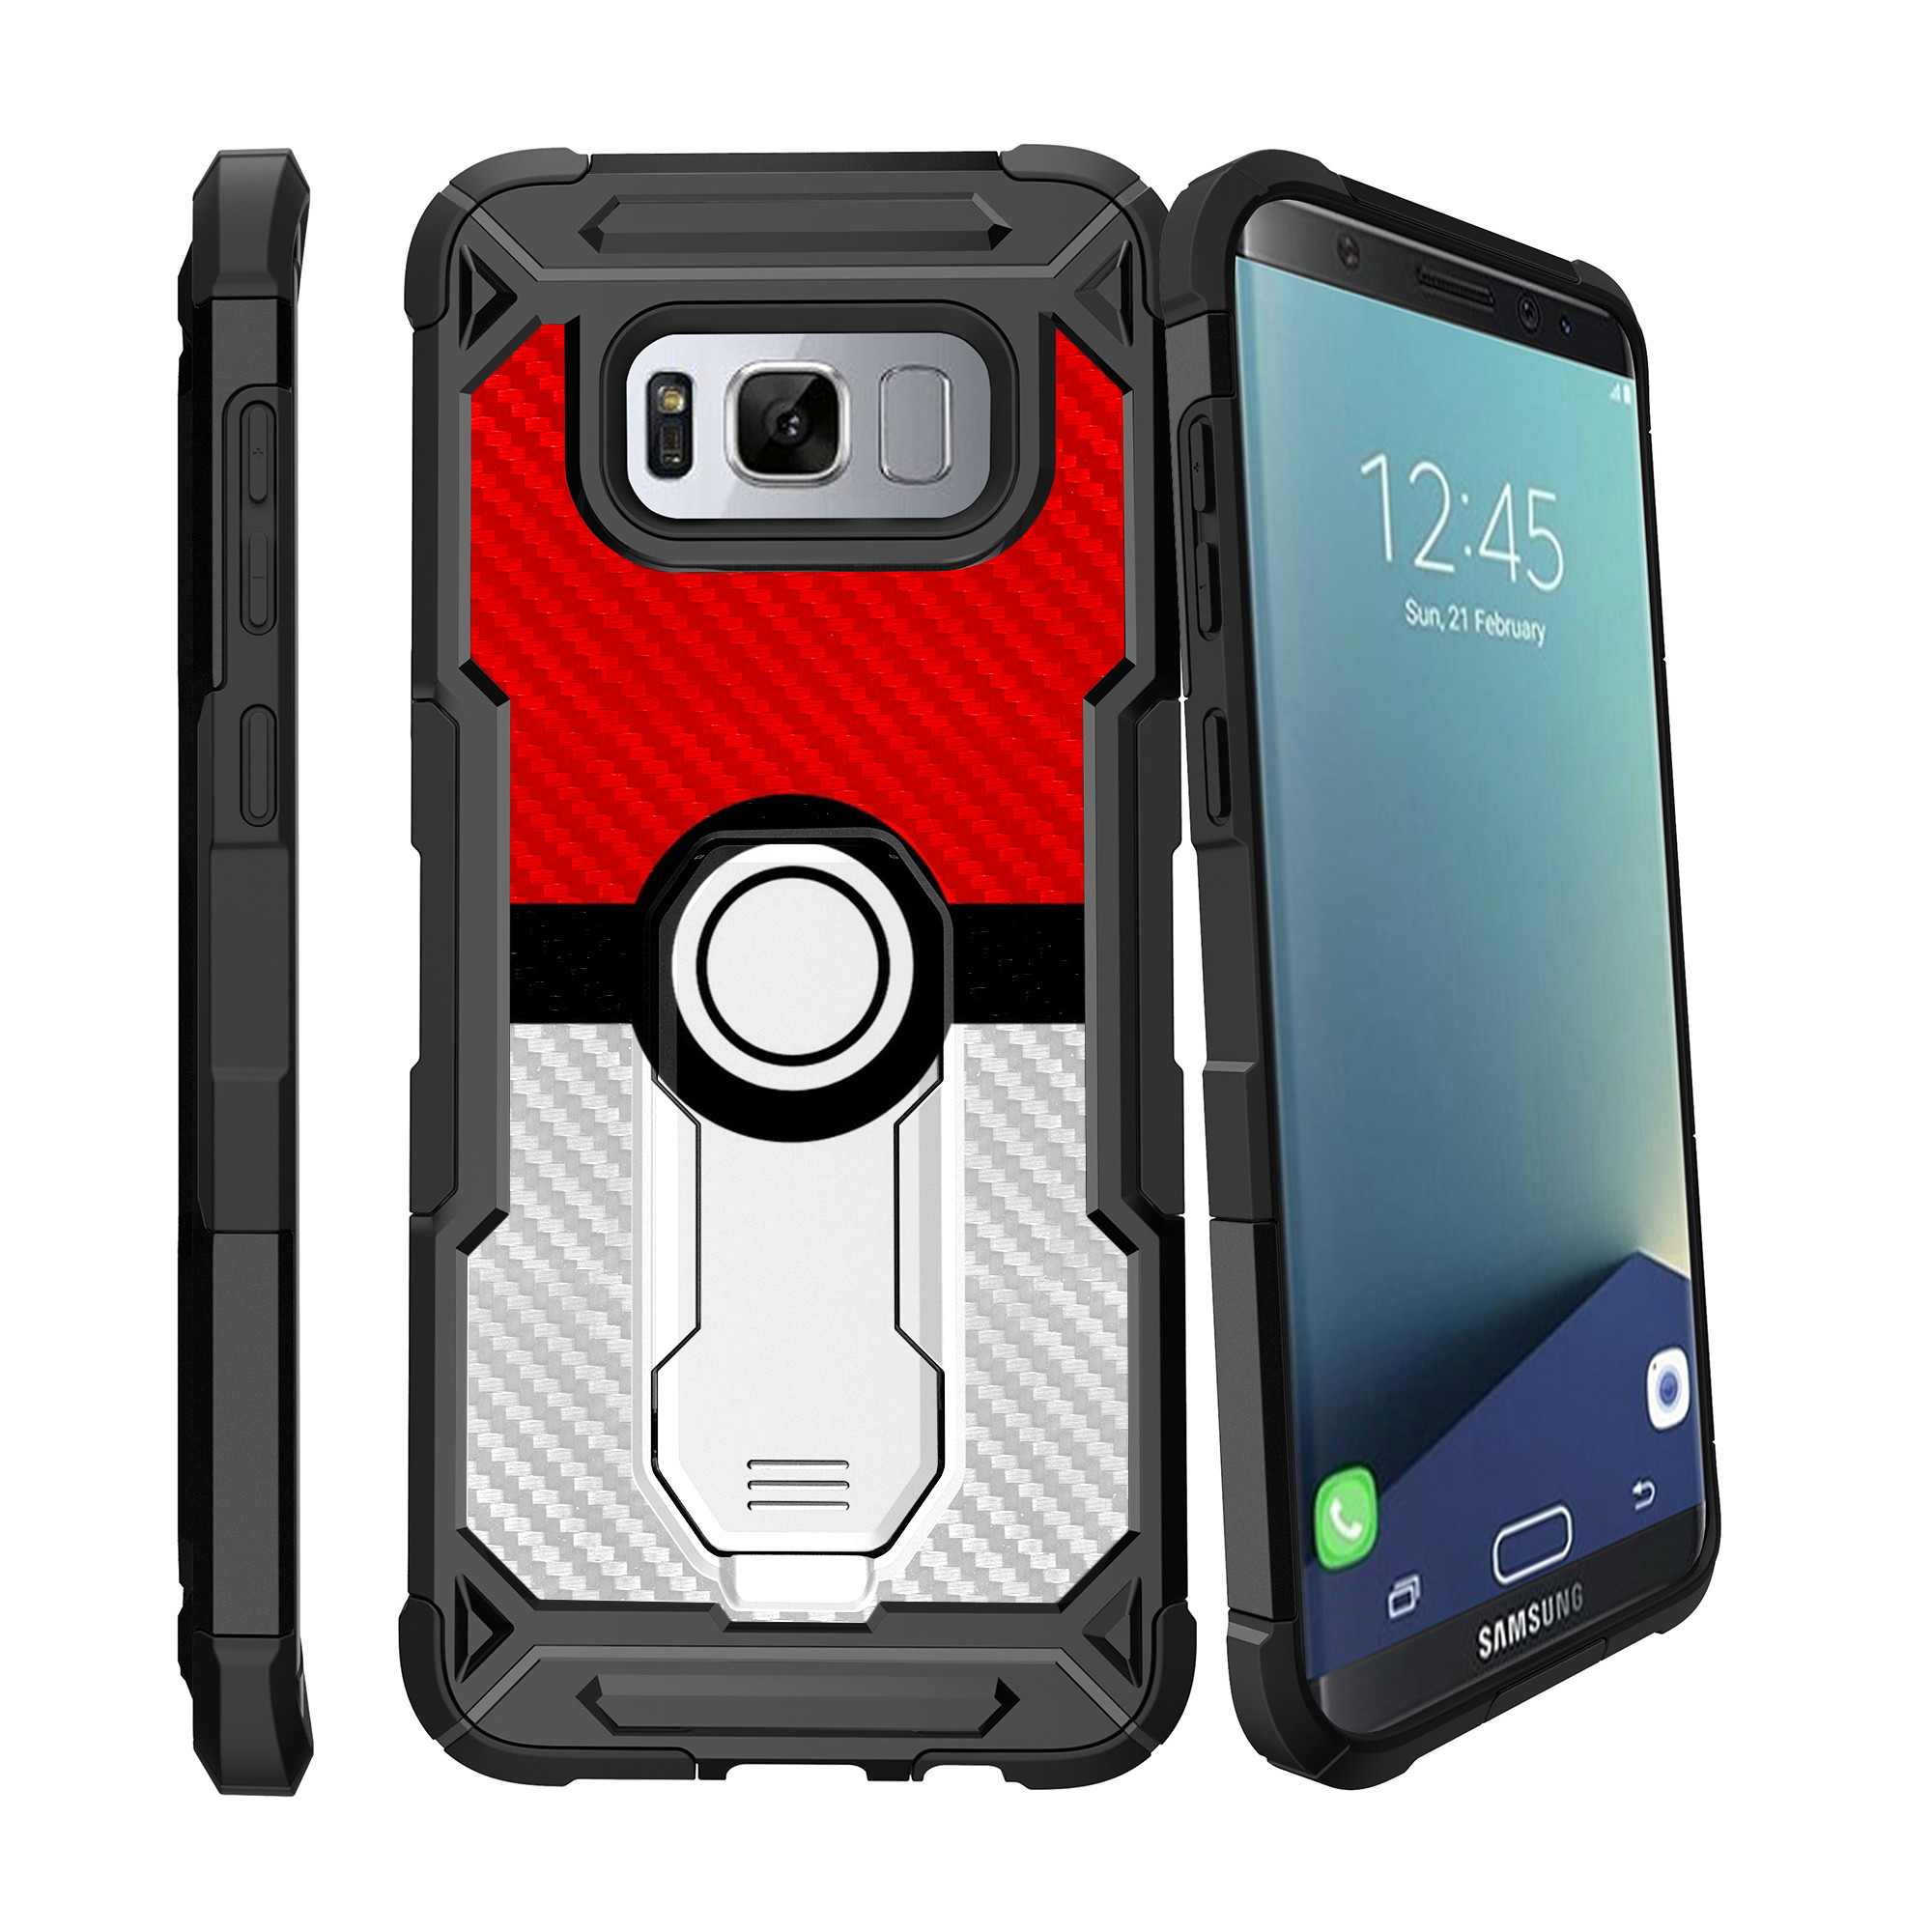 Case for Samsung Galaxy S8 Plus Version [ UFO Defense Case ][Galaxy S8 PLUS SM-G955][Black Silicone] Carbon Fiber Texture Case with Holster + Stand Unique Collection